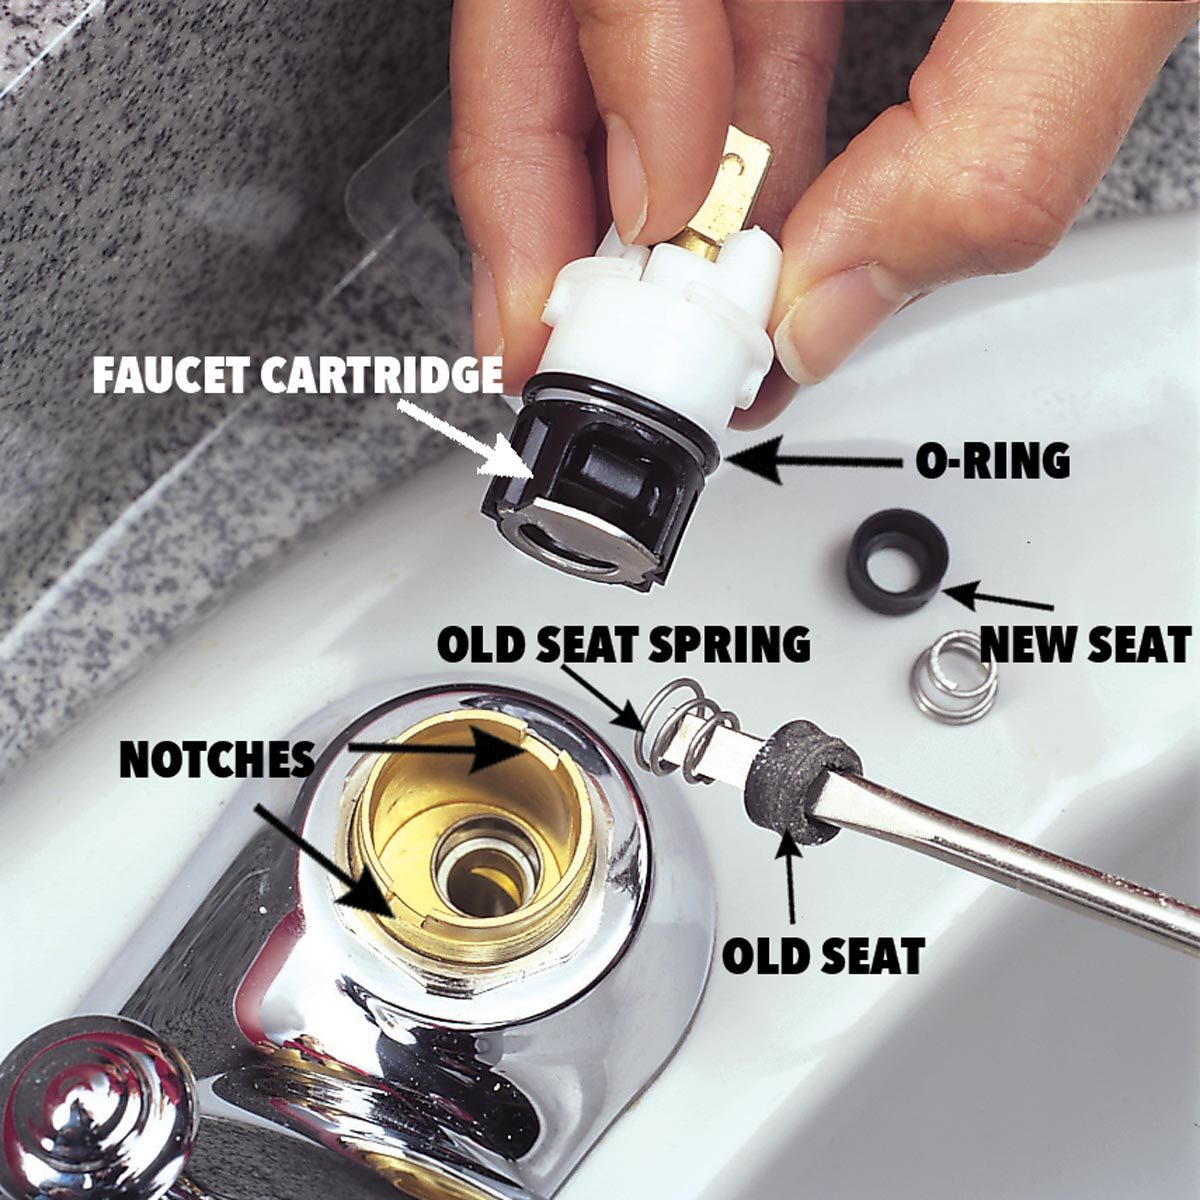 Kitchen Sink Faucet Leaks Around: Quickly Fix A Leaky Faucet Cartridge